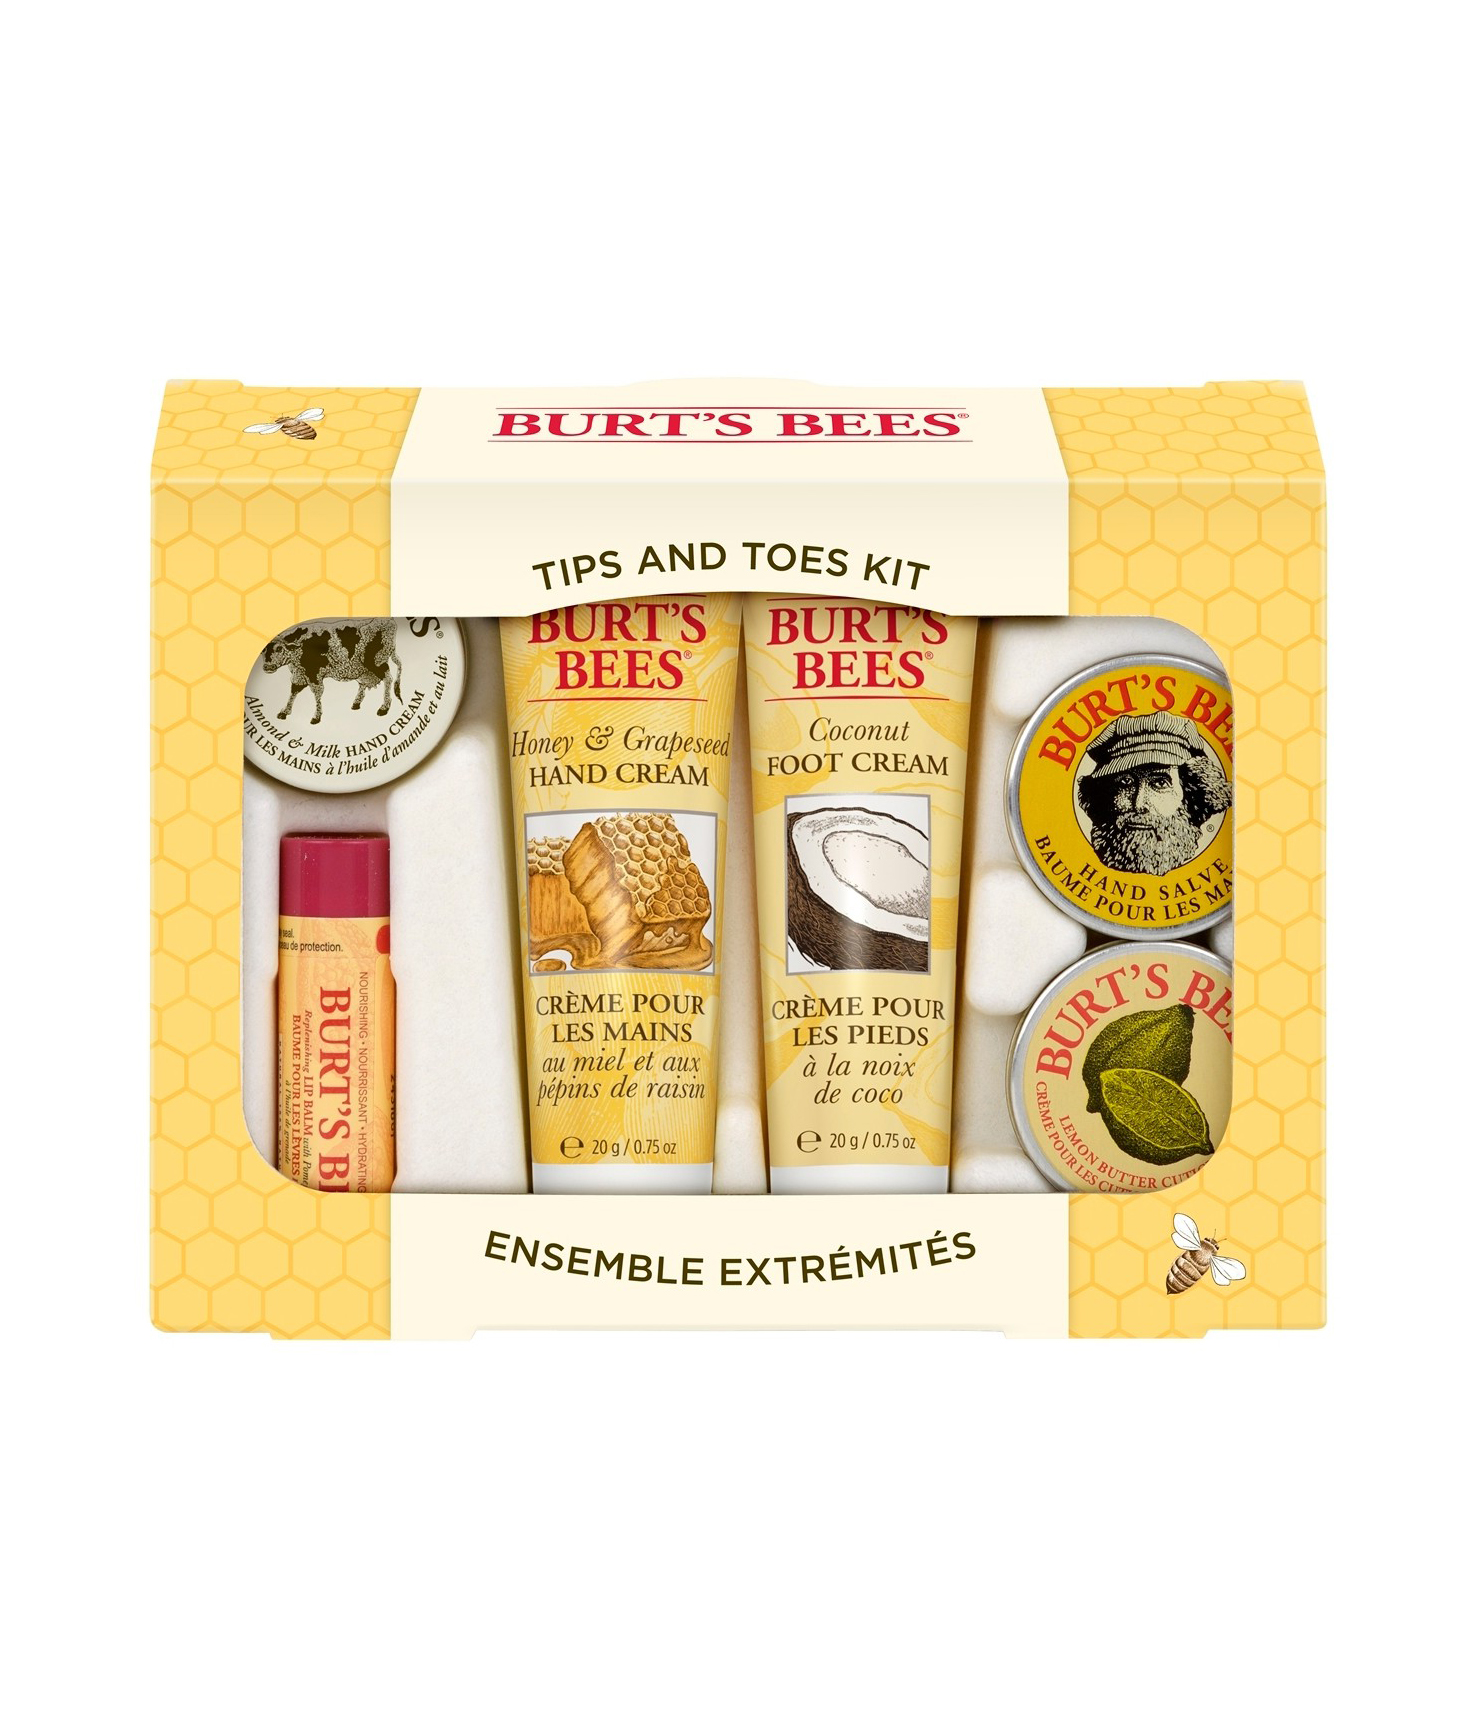 Burt's Bees Tips and Toes Gift Set